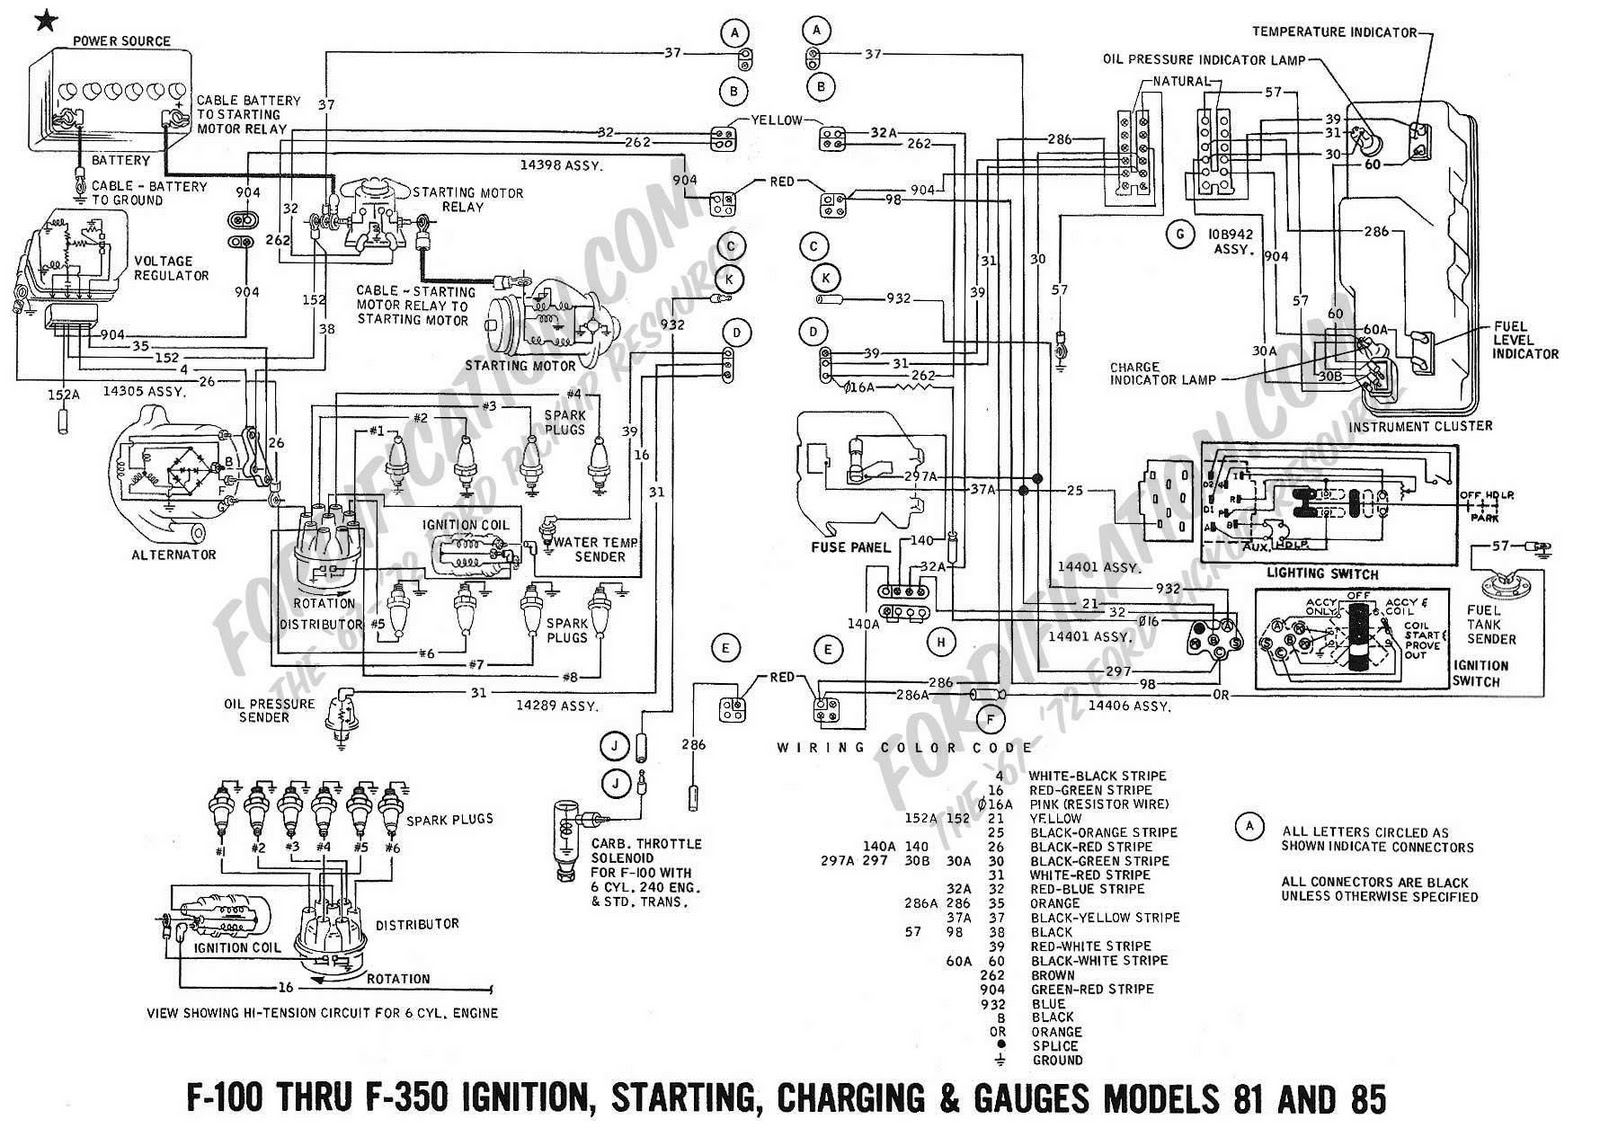 1967 Galaxie Wiring Diagram Archive Of Automotive Ford Diagrams 65 Schematic Blog About Rh Clares Driving Co Uk